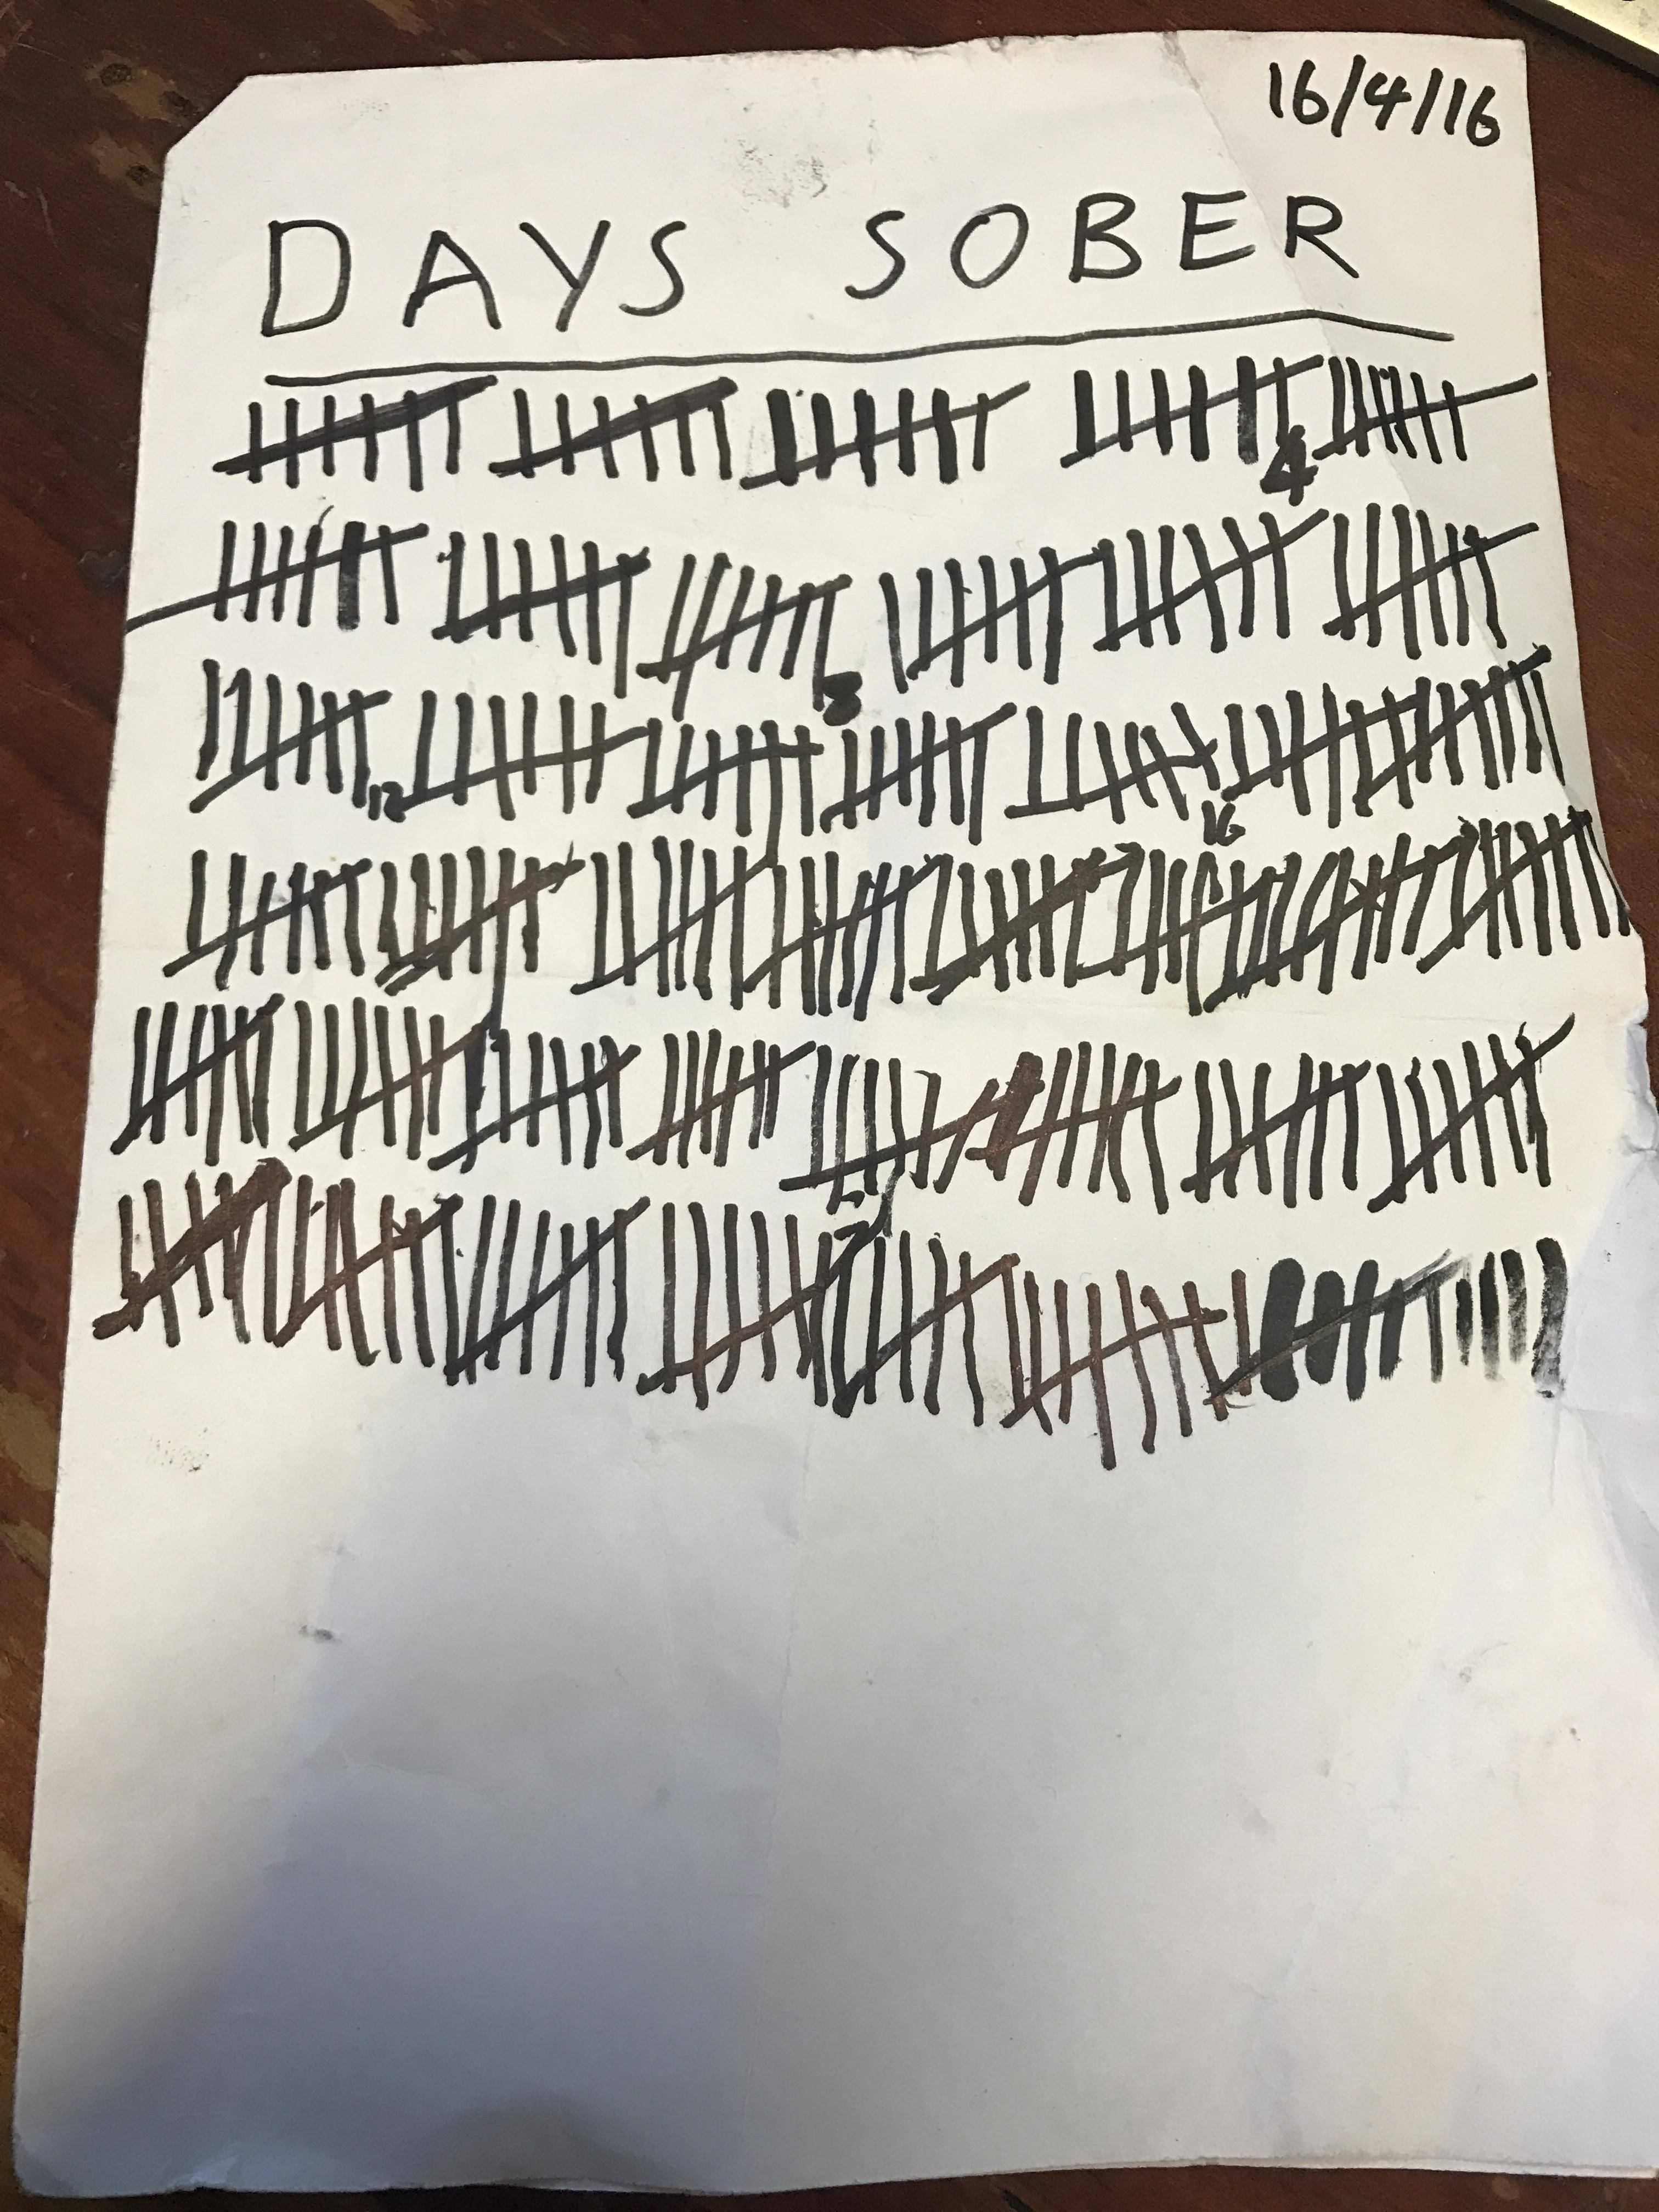 [Image] This morning, my amazing wife pointed out that I hadn't marked my days sober like I use too. Life can get better!